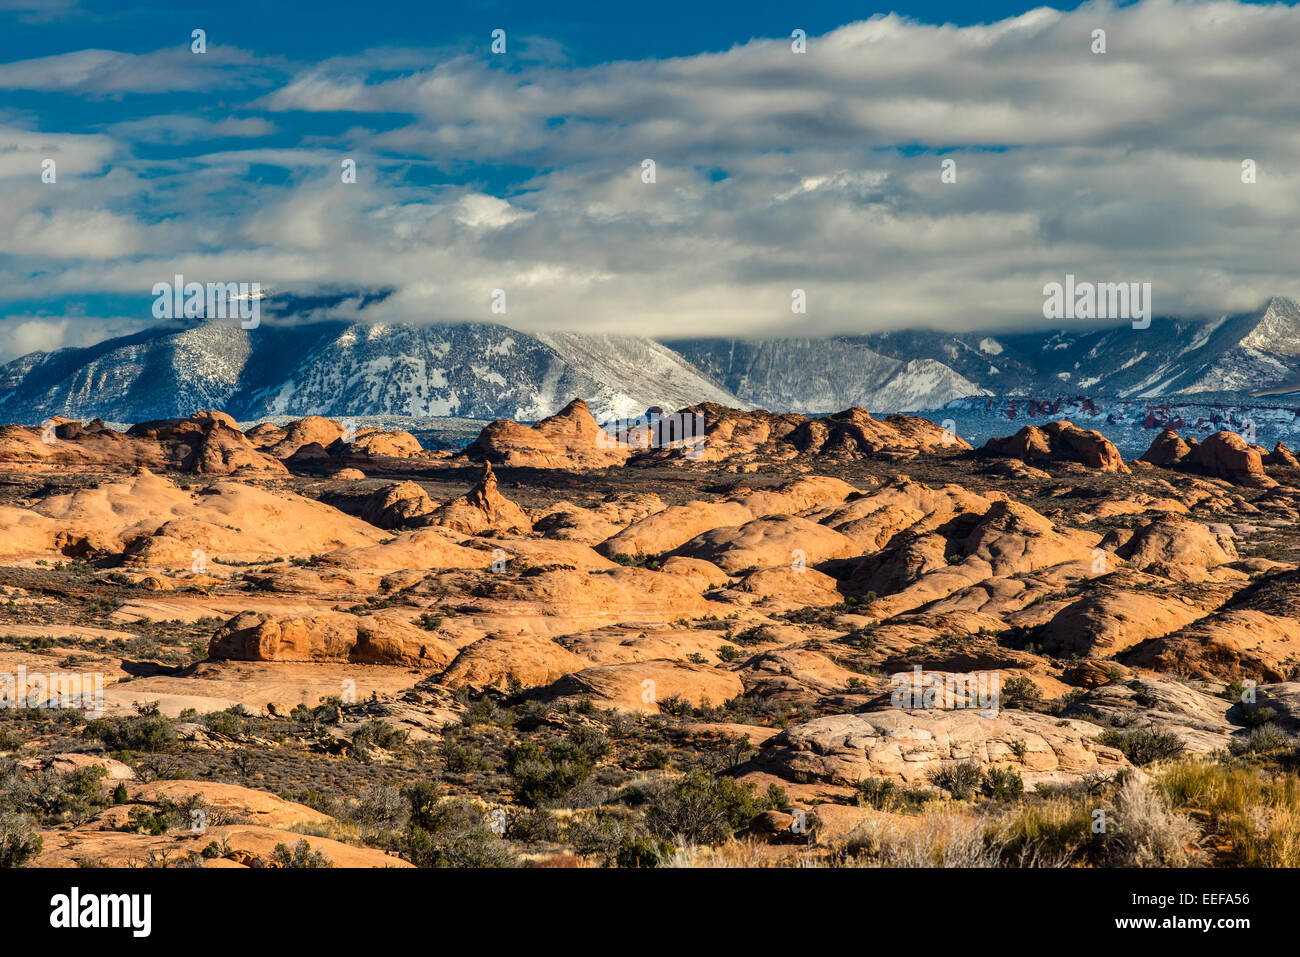 Winter view over the Petrified Dunes with snowy, Arches National Park, Utah, USA - Stock Image